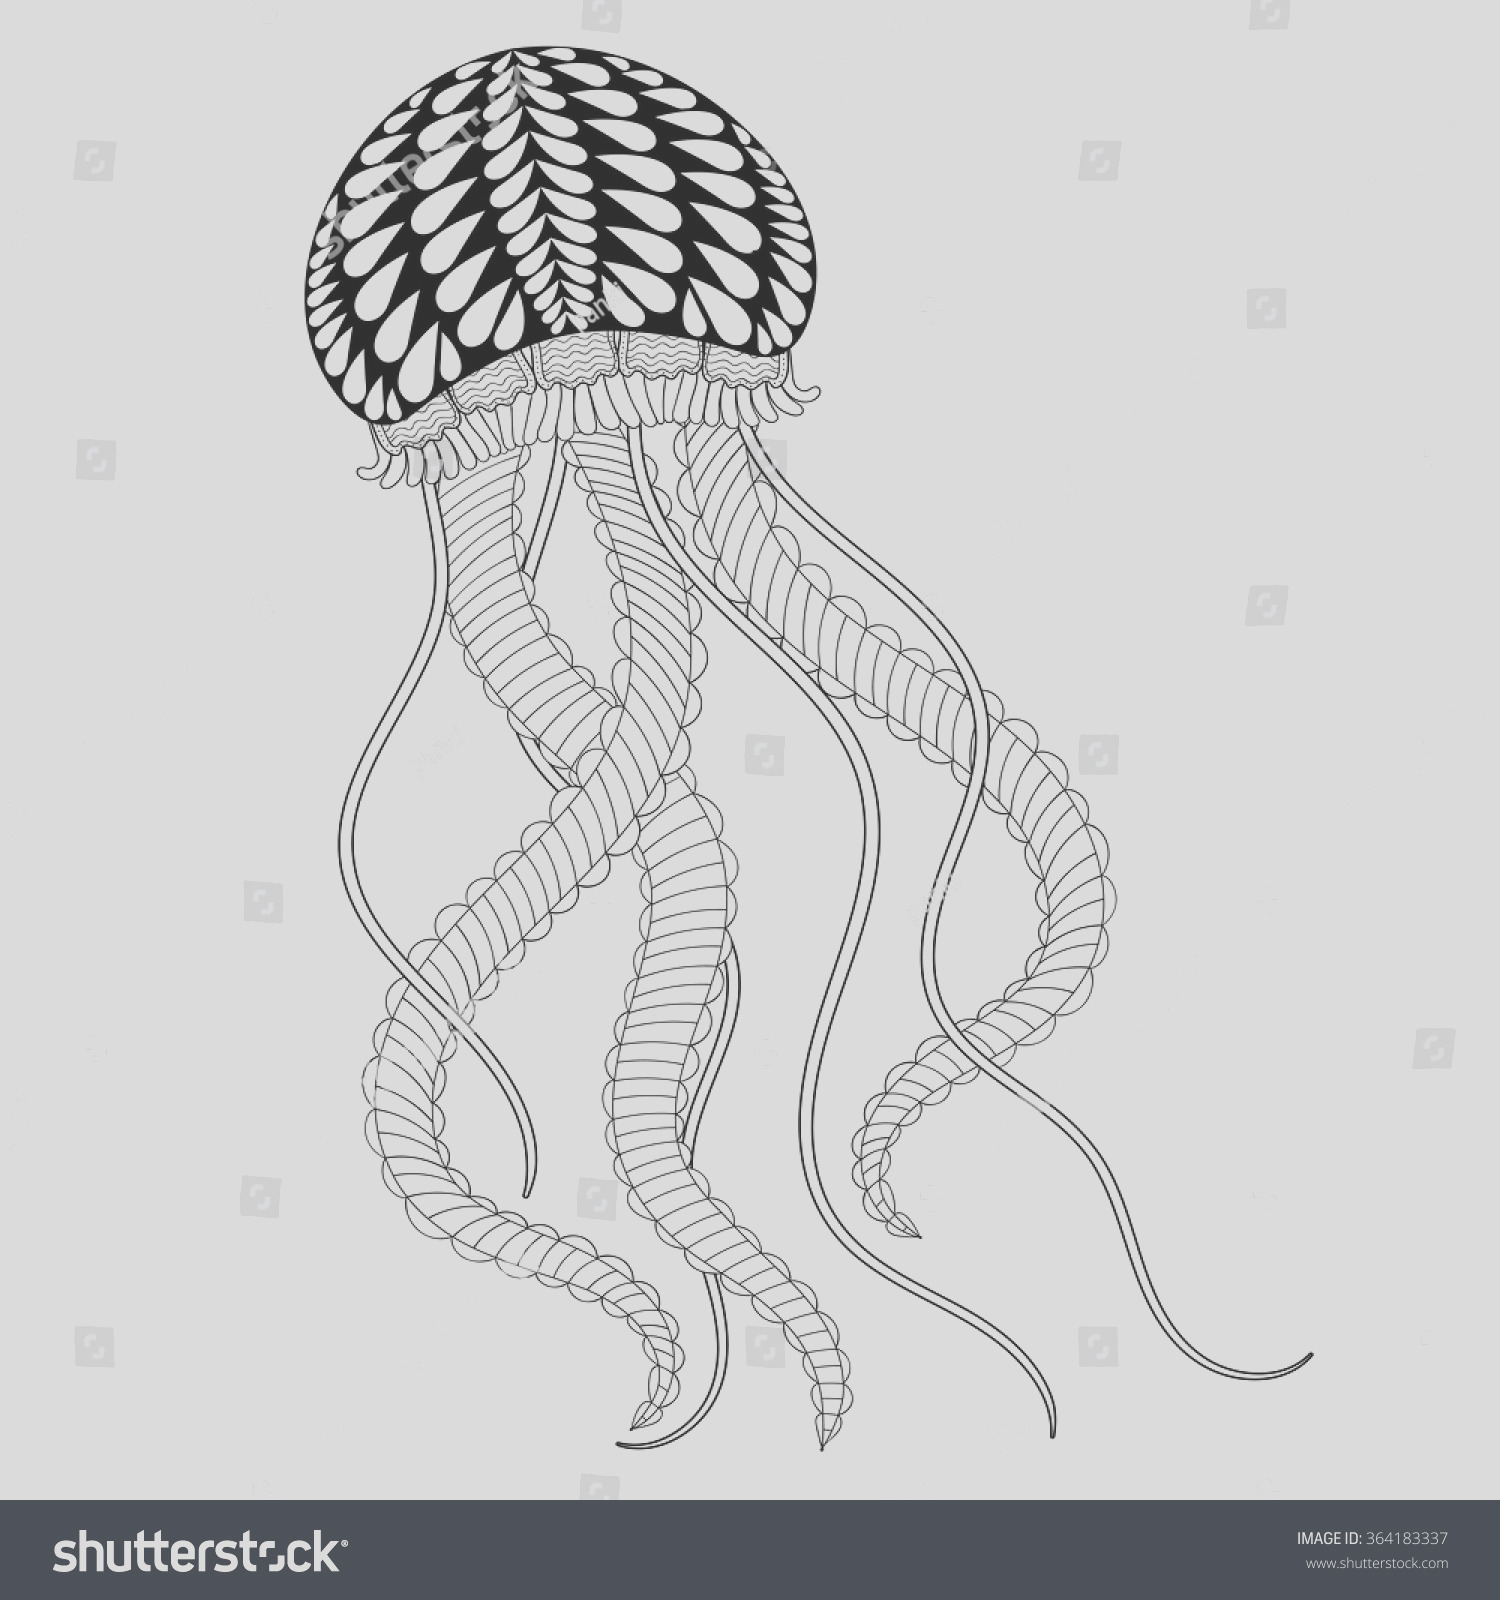 stock vector hand drawn artistic sea jellyfish for adult coloring pages in n doodle zentangle style mehndi